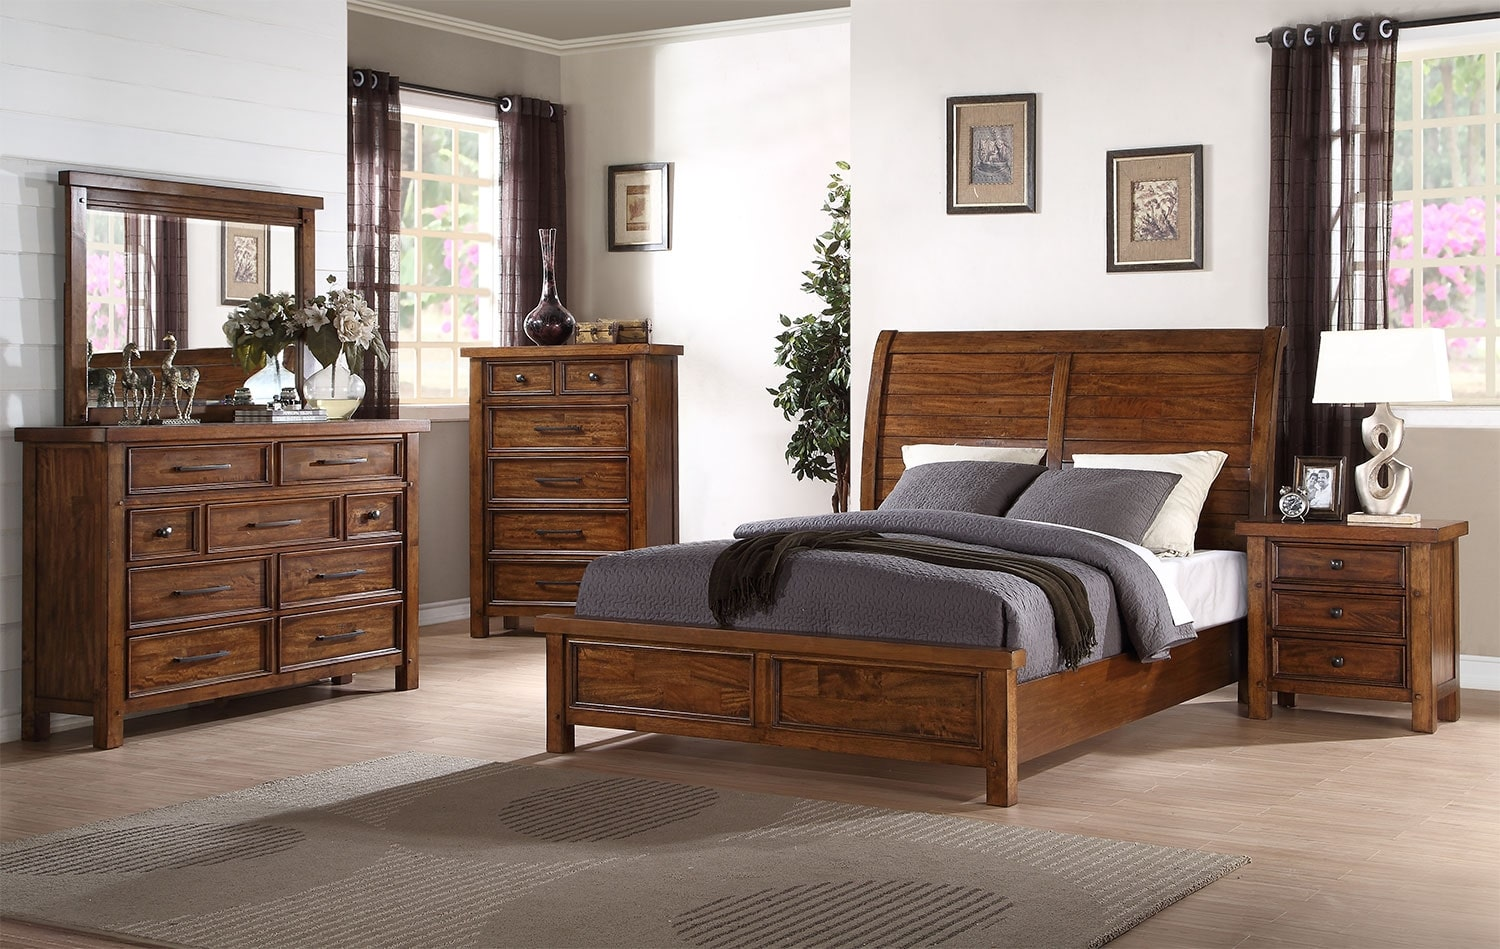 Bedroom Furniture - Sonoma 7-Piece King Bedroom Package – Medium Brown